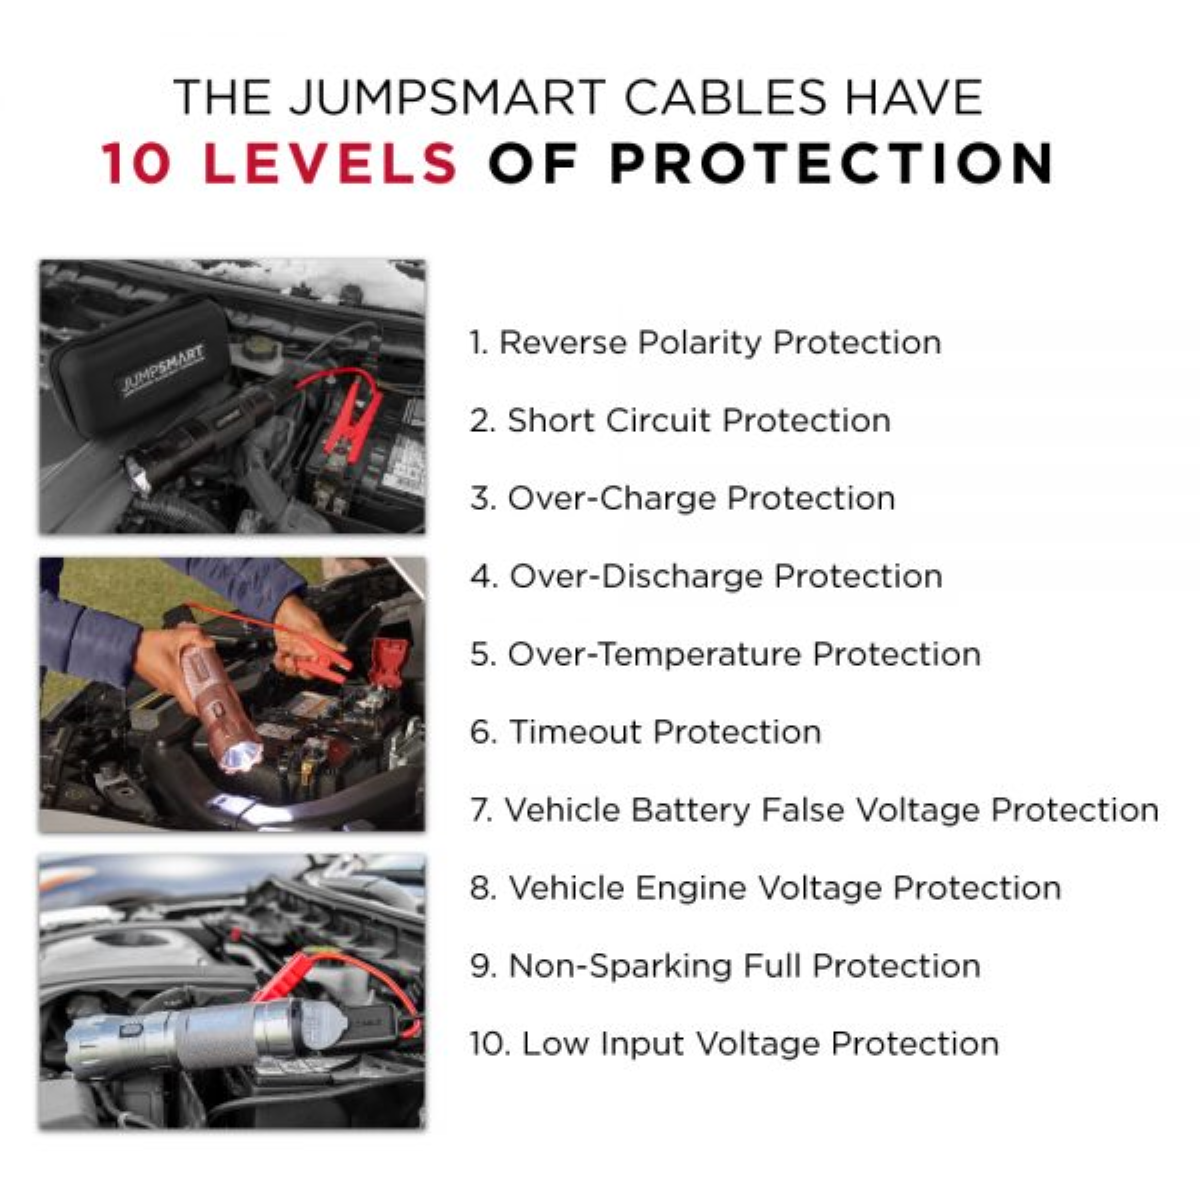 Jumpsmart - 10 Built-In Safety Features